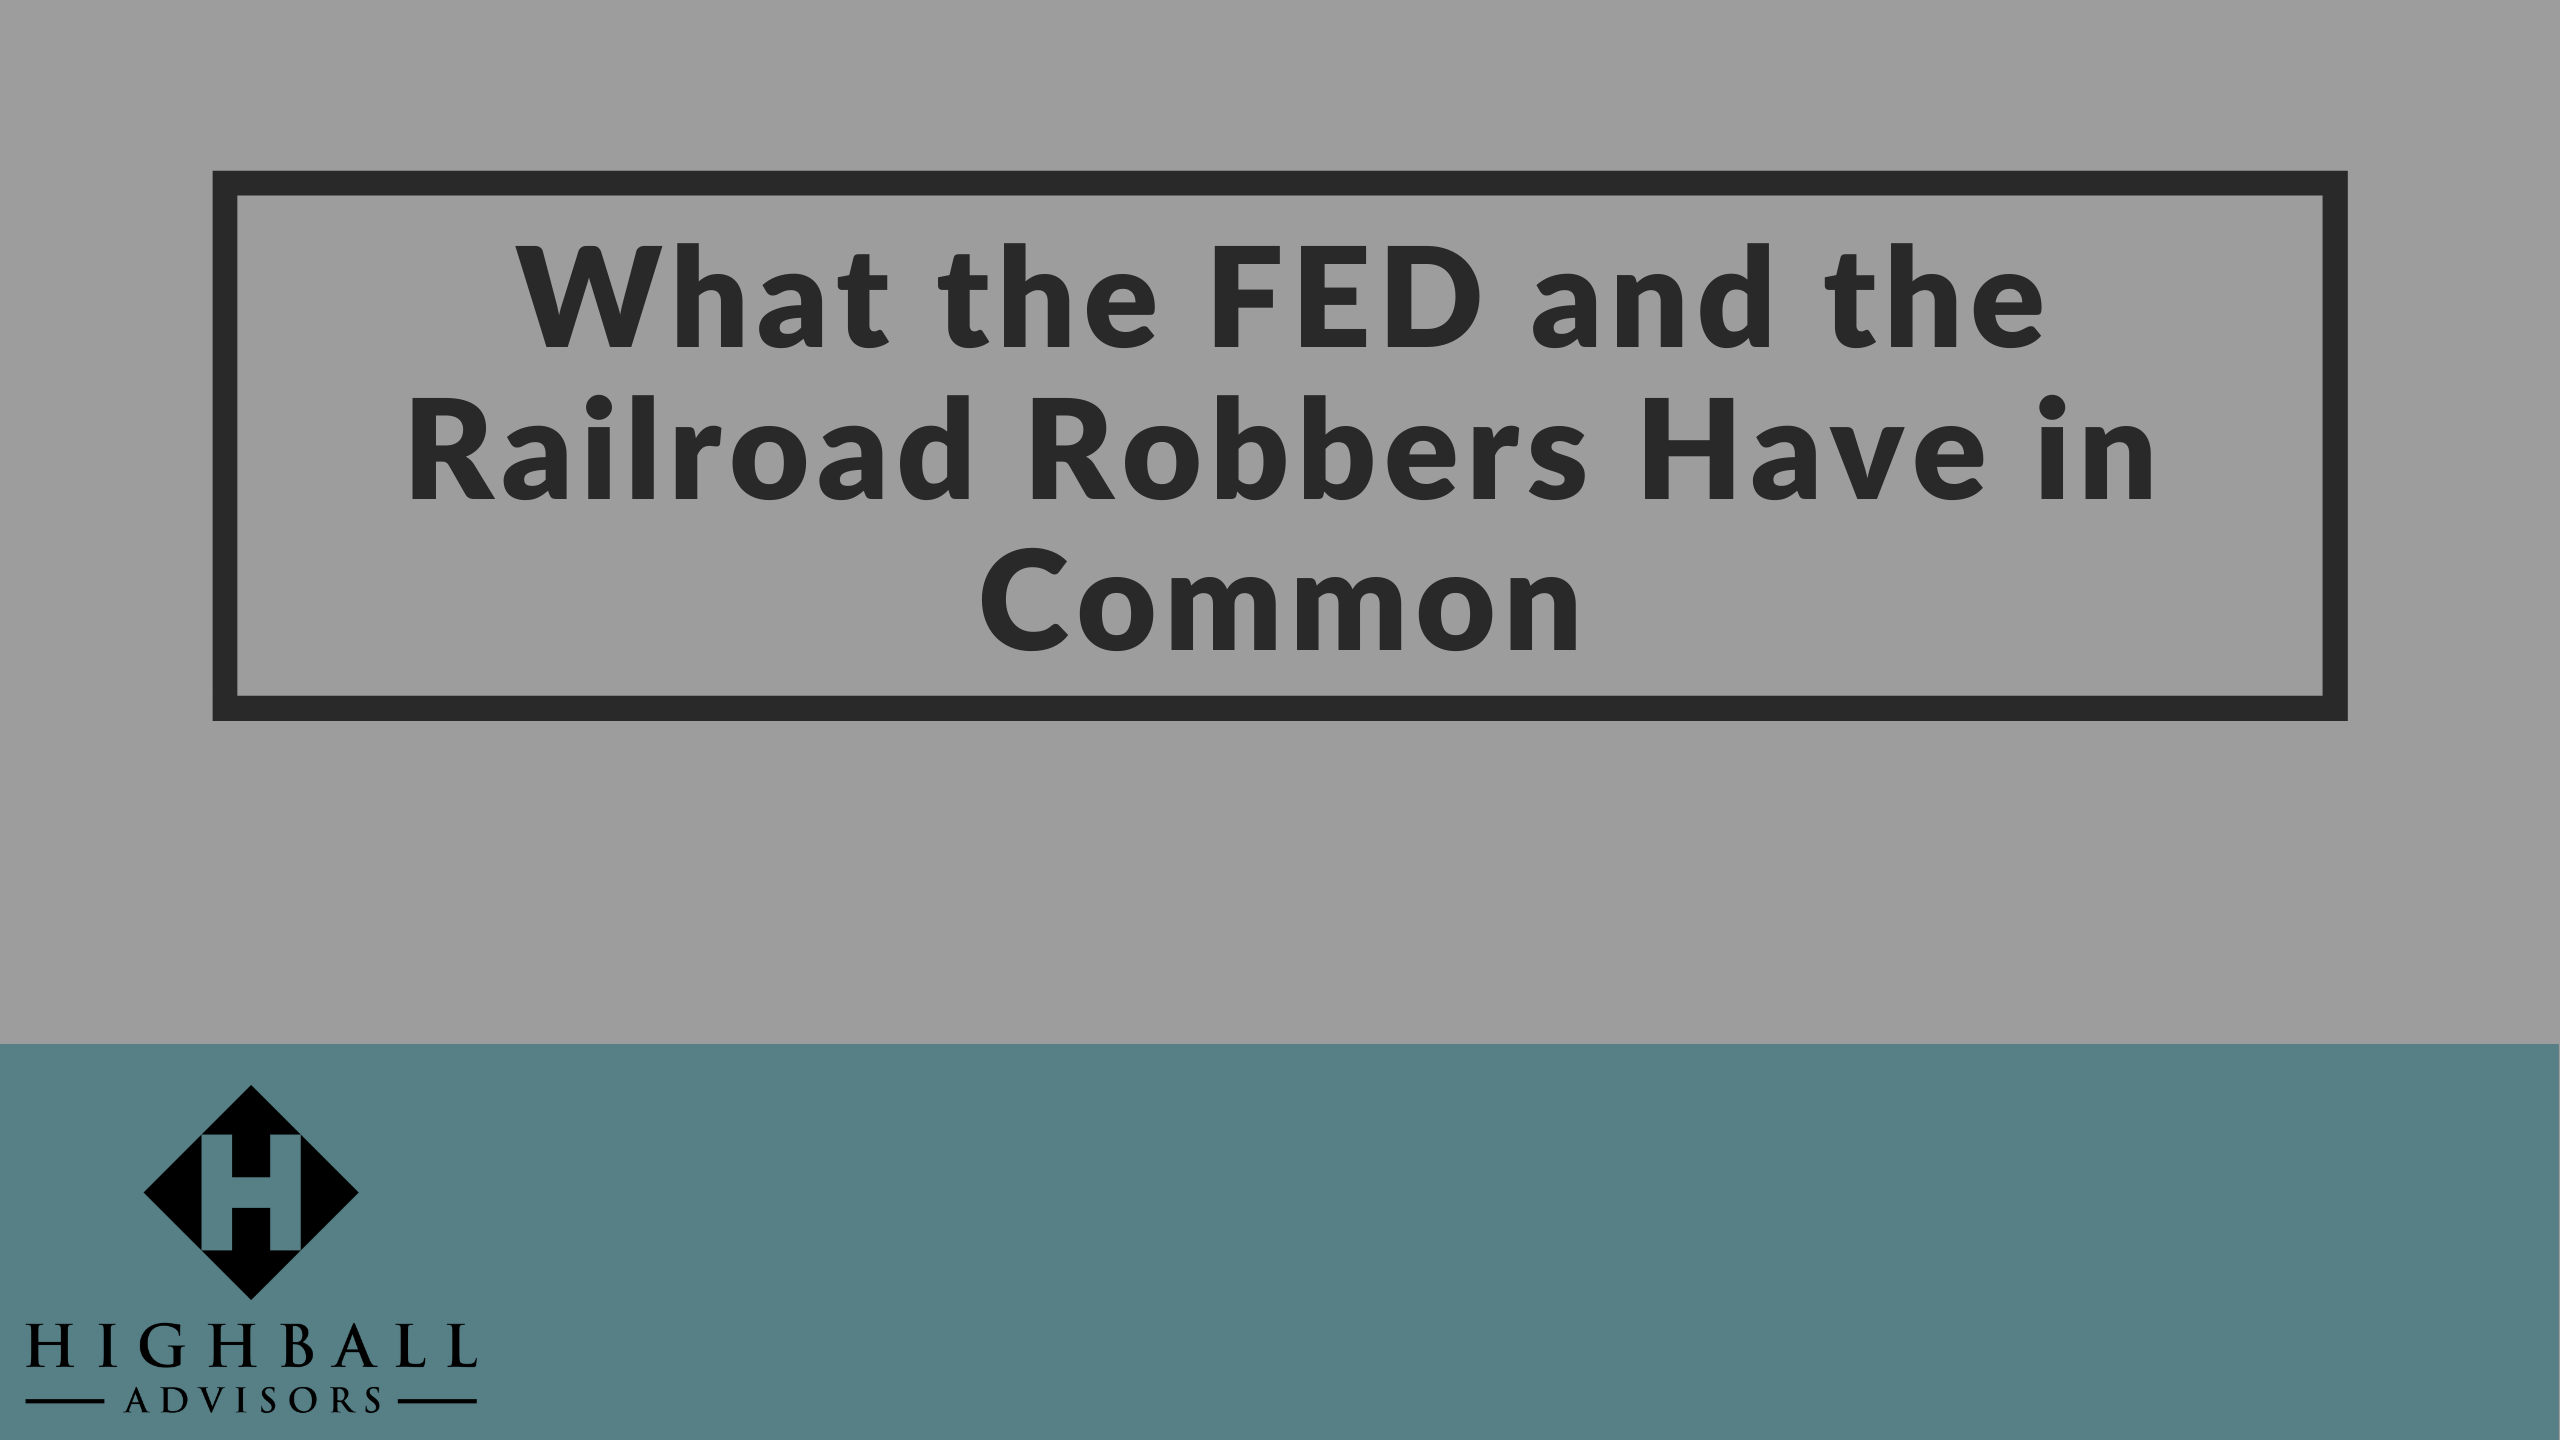 VIDEO: What the FED and the Railroad Robbers Have in Common Thumbnail